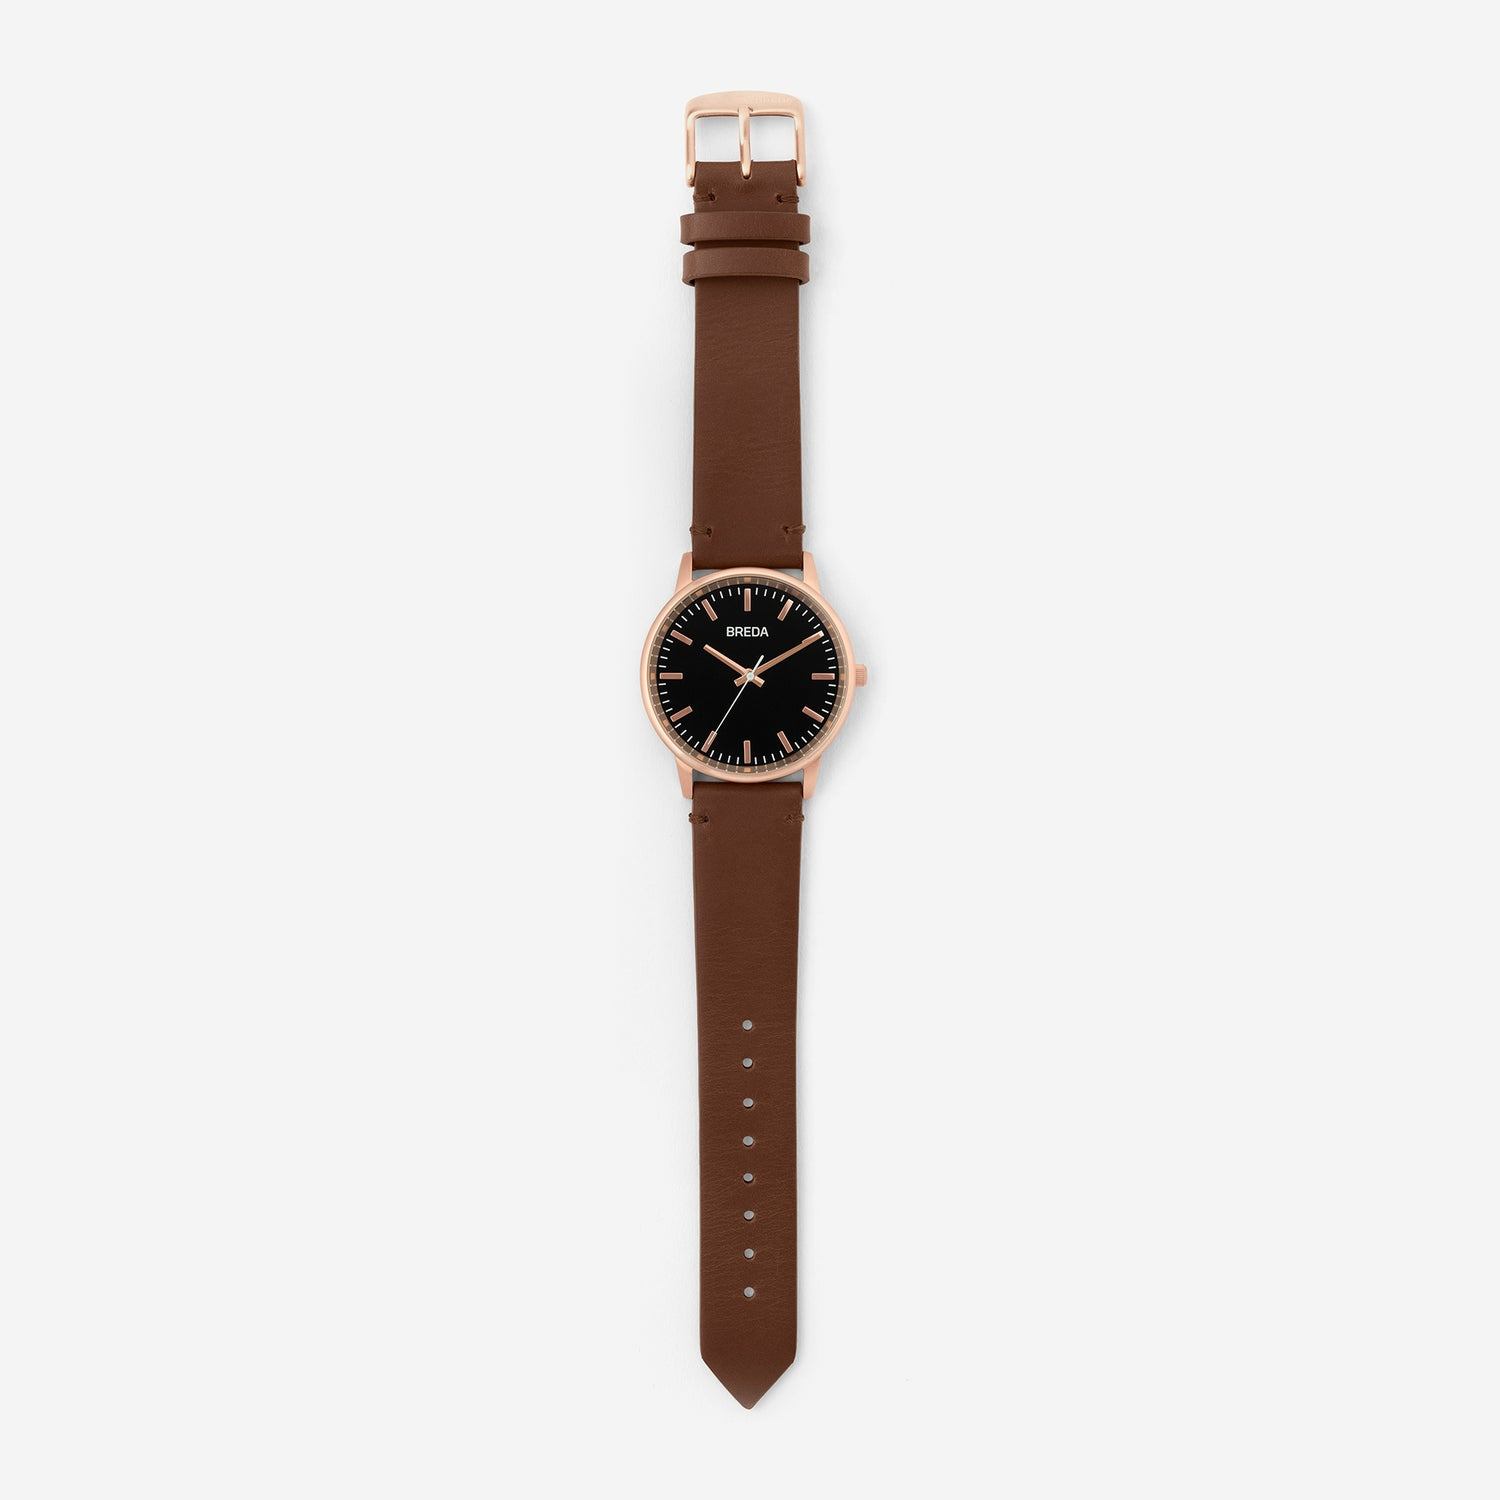 breda-zapf-1697n-rose-gold-brown-leather-watch-long